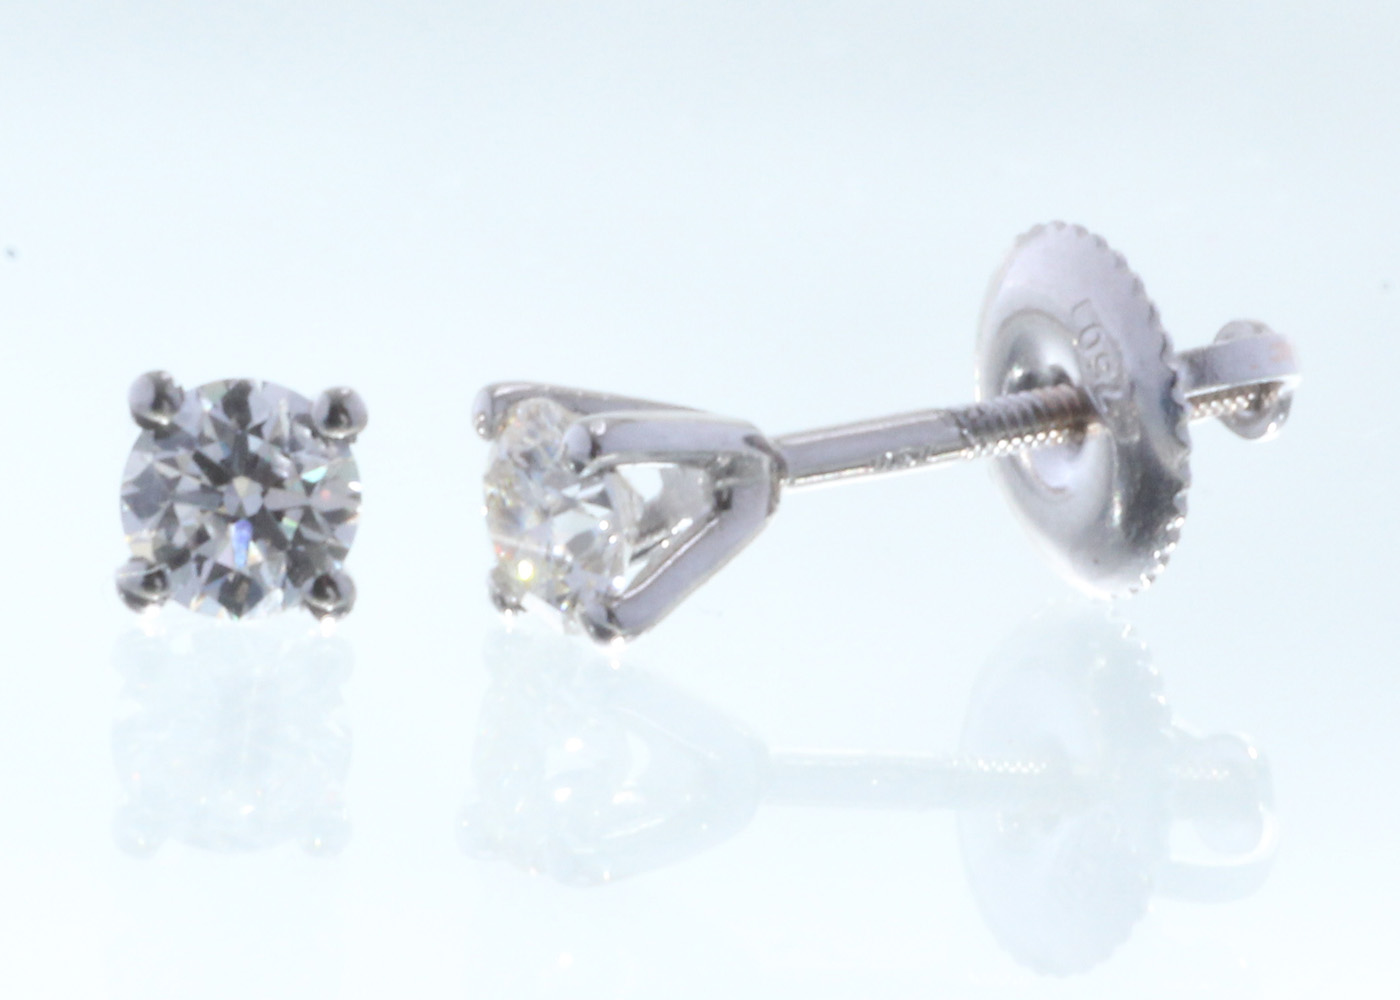 18ct White Gold Claw Set Diamond Earrings 0.40 Carats - Image 2 of 3